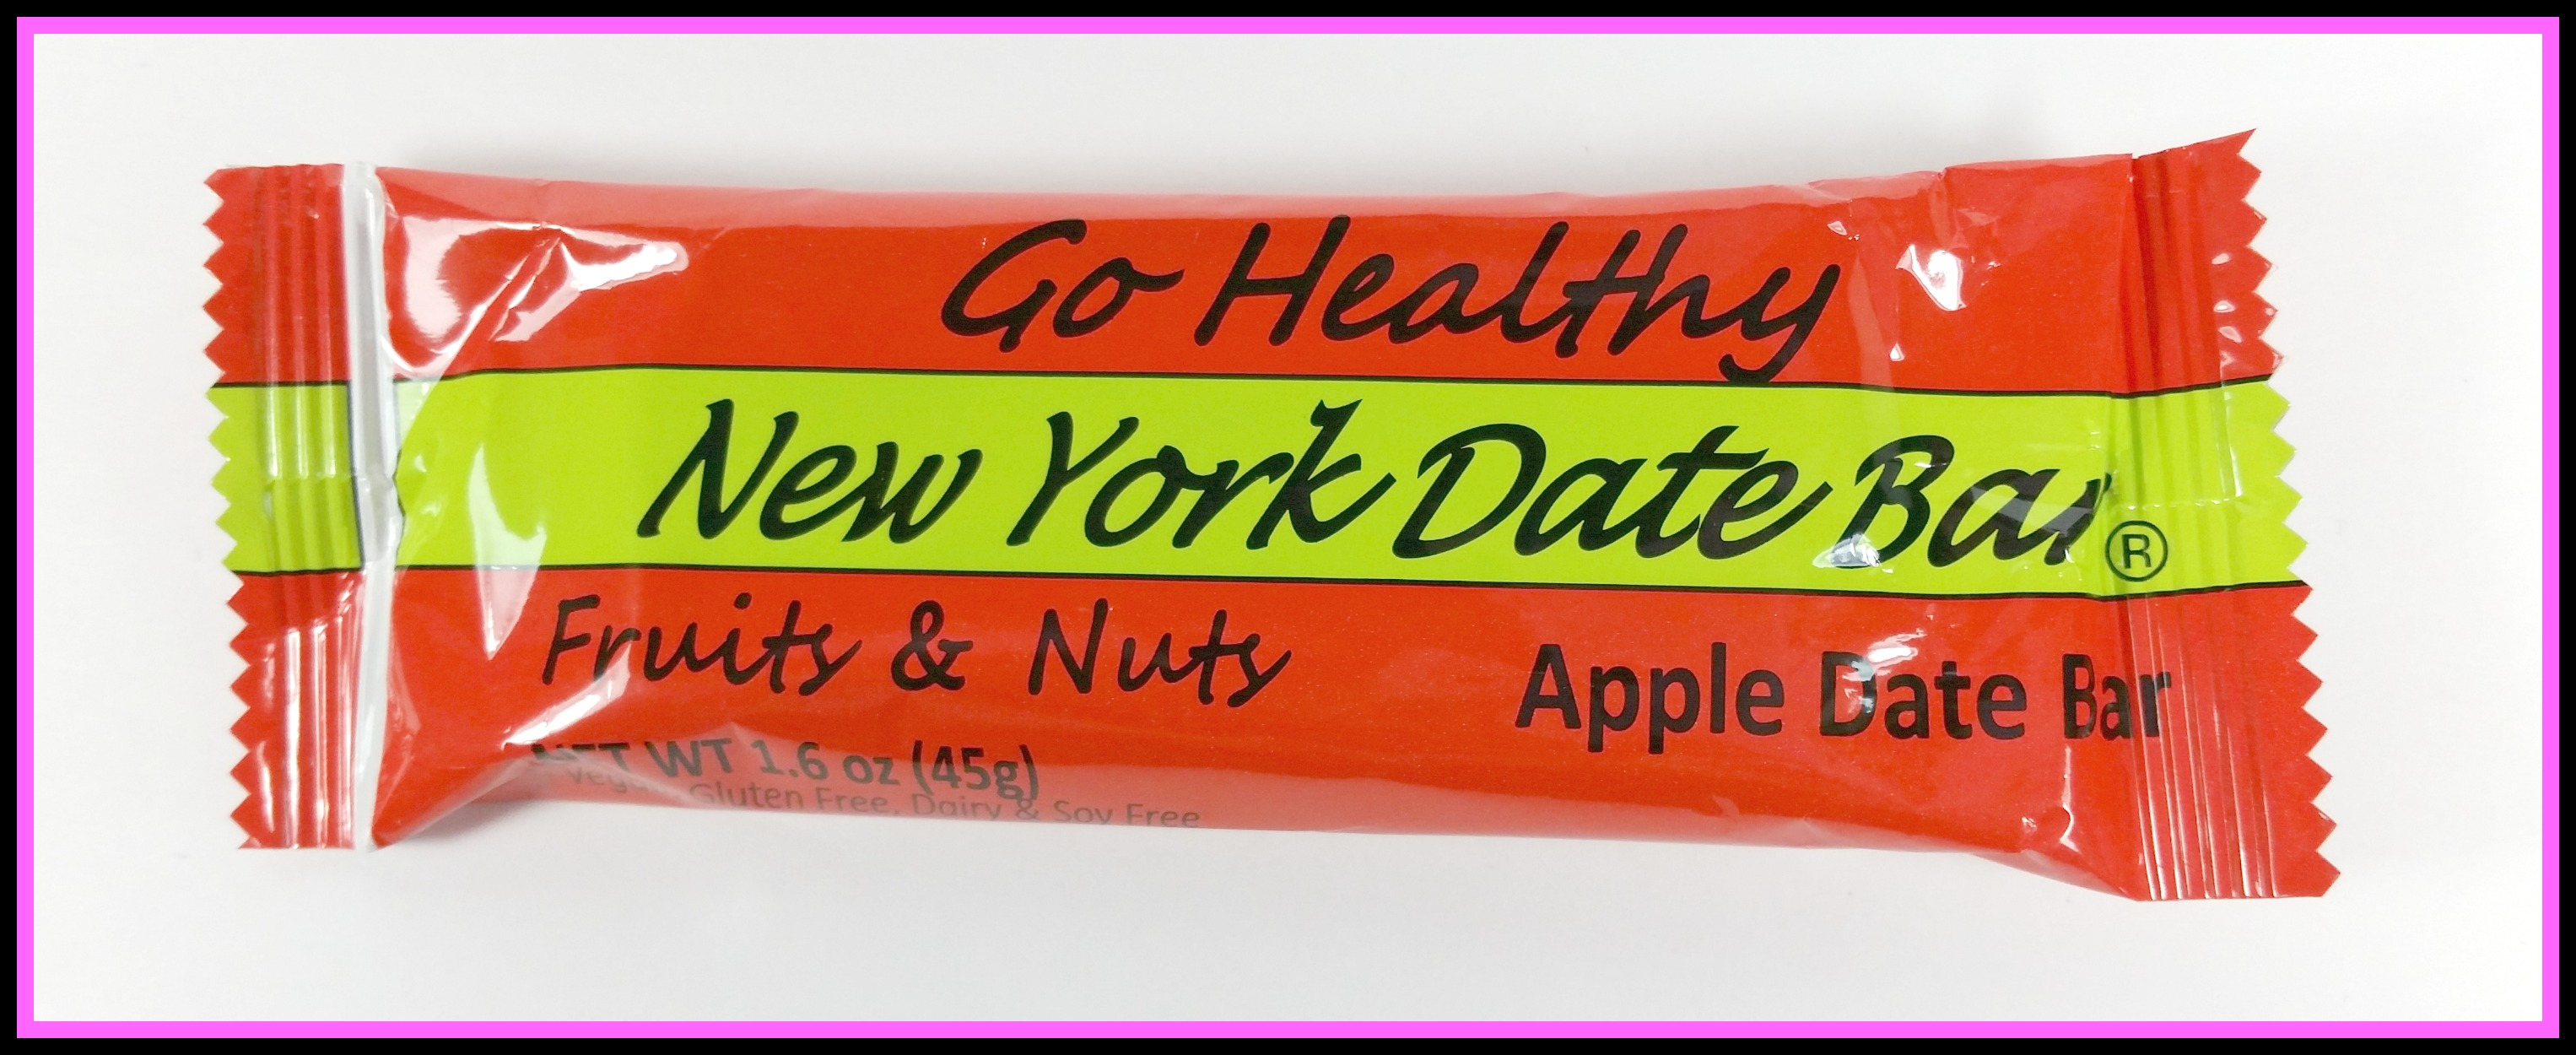 Date Bar urthbox